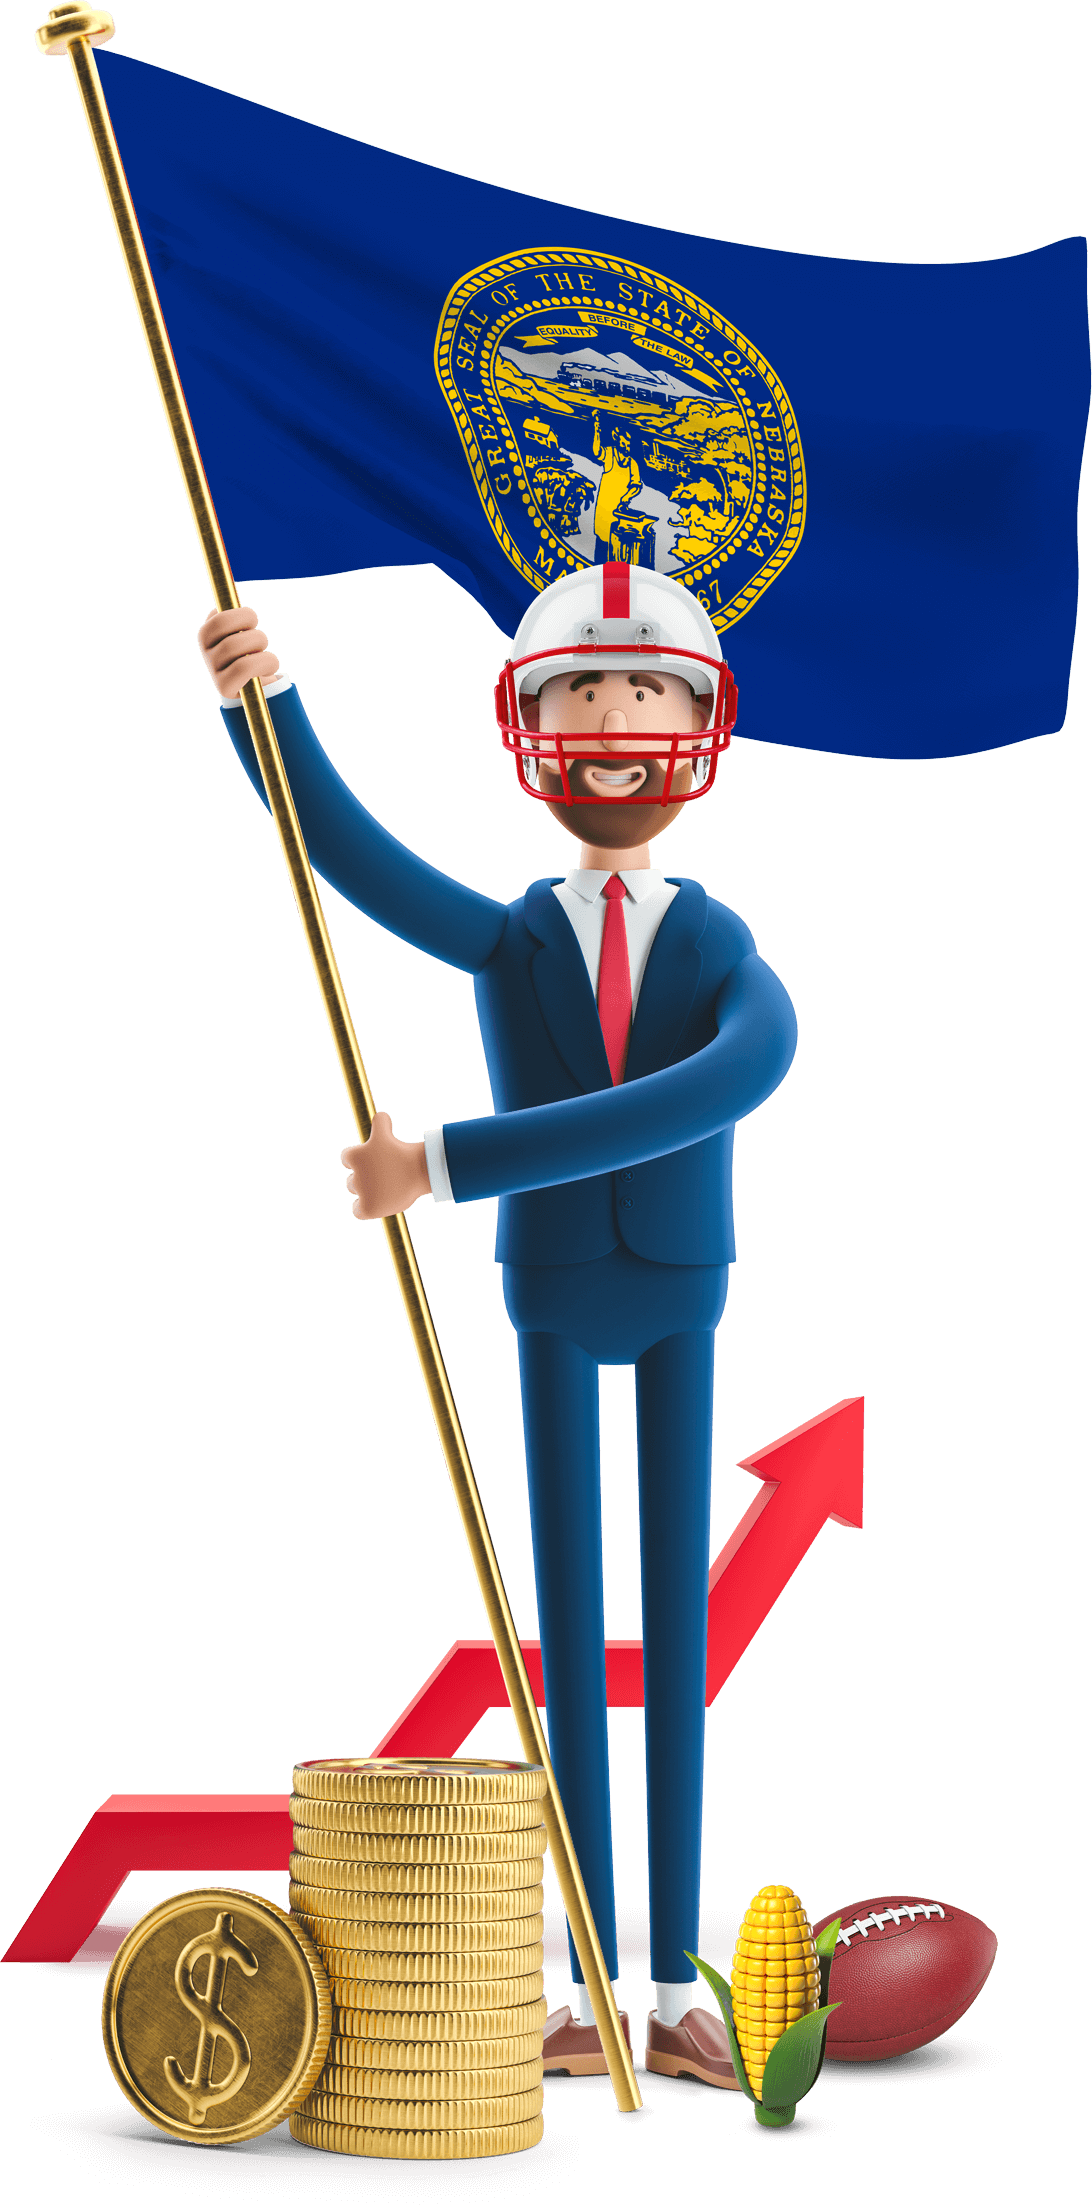 Nebraska flag held by MetCredit USA businessman who's wearing a football helmet and a football and a cob of corn are at his feet